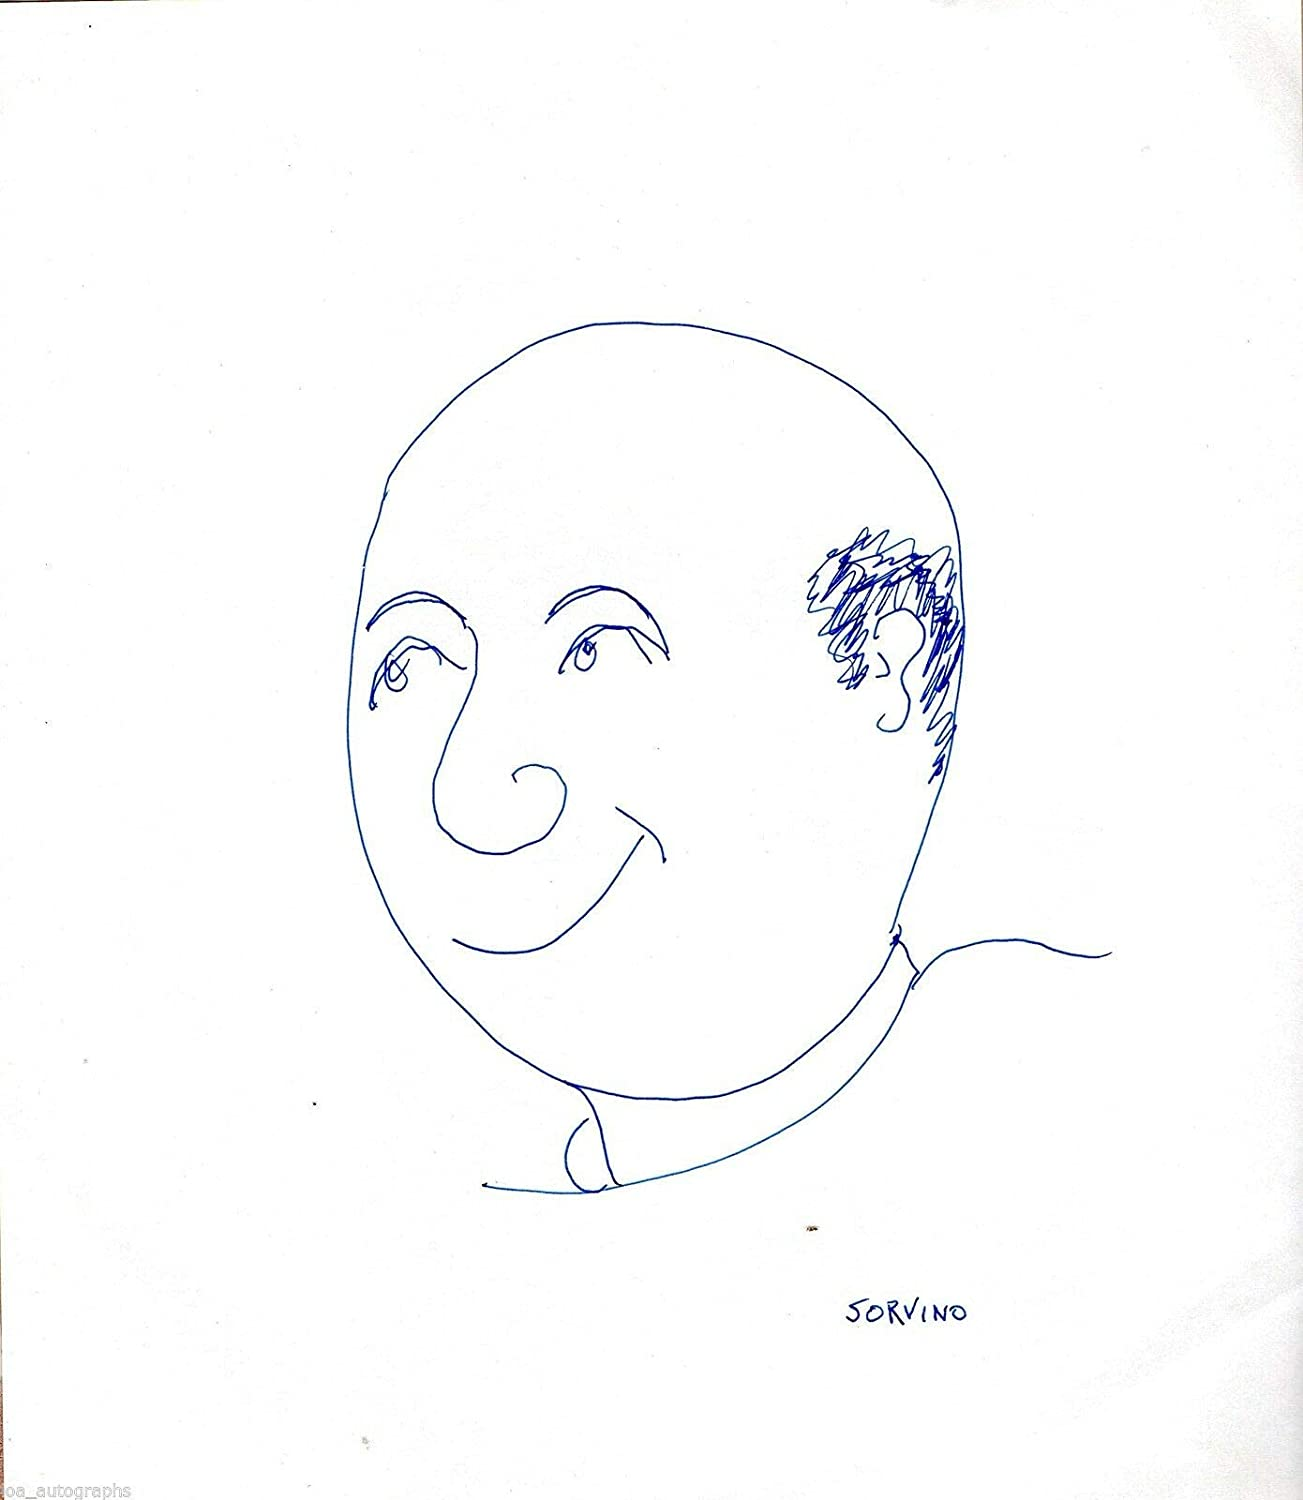 Credence Paul Sorvino set Beauty products of 2 hand RA sketch drawn sketches cartoon self